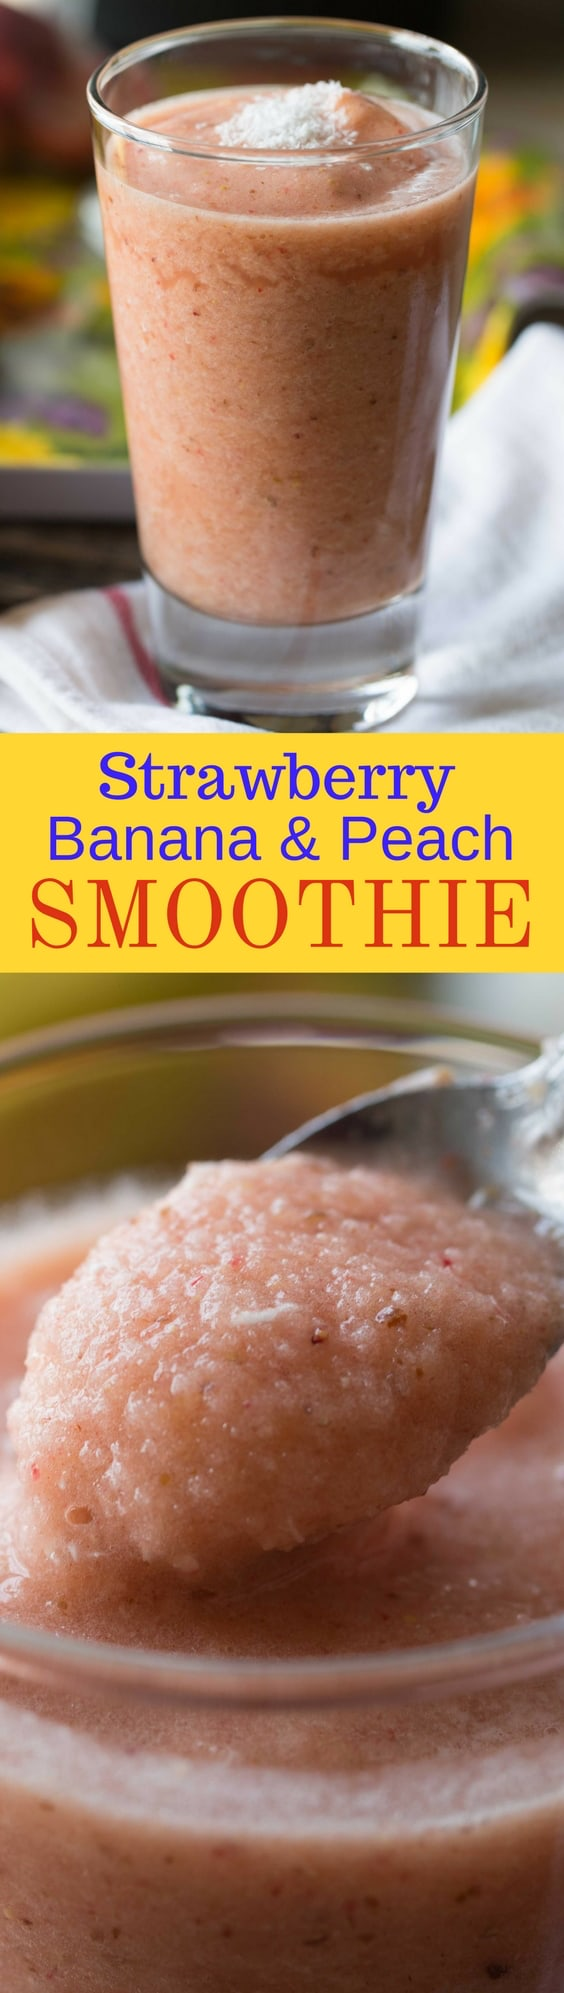 Strawberry, Banana & Peach Smoothie - Healthy, sweet, refreshing and satisfying - frozen fruit smoothies are the perfect treat! www.savingdessert.com